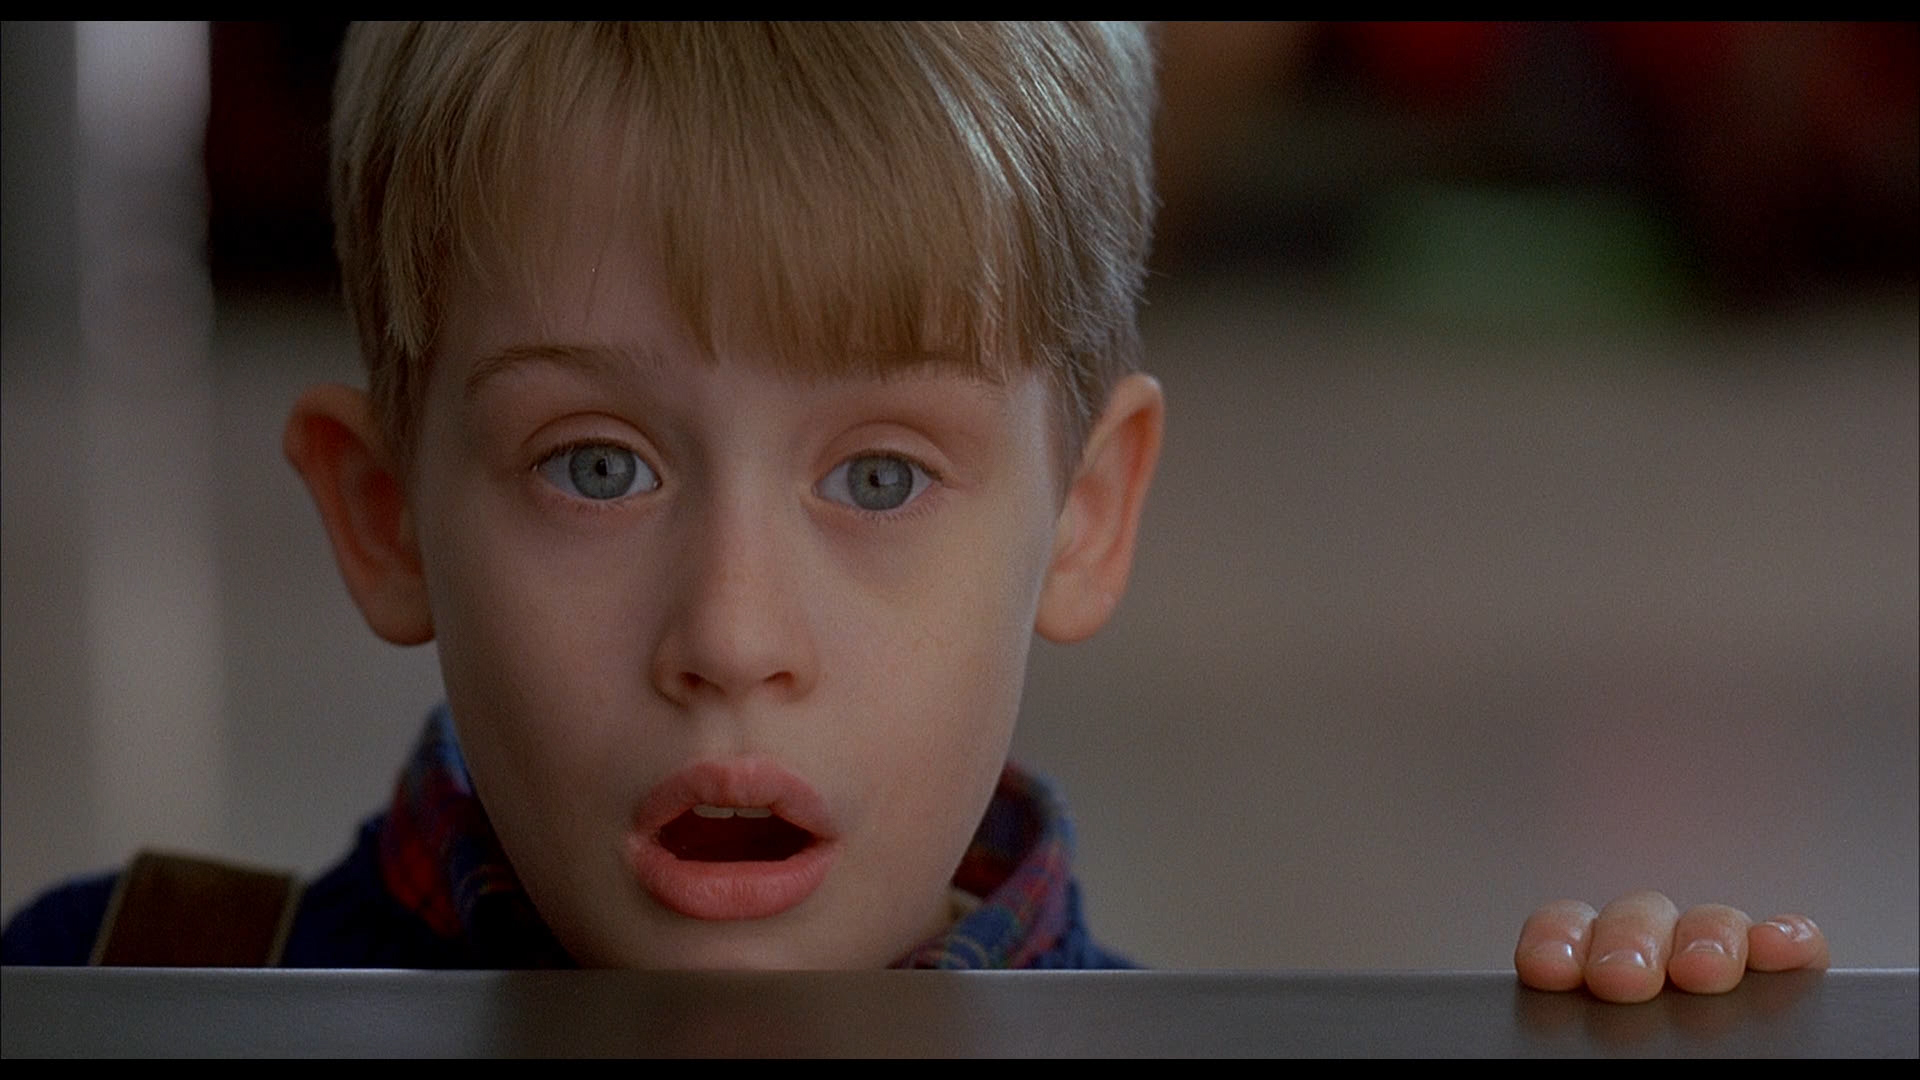 Home alone movie hd wallpapers for Wallpaper hd home movie